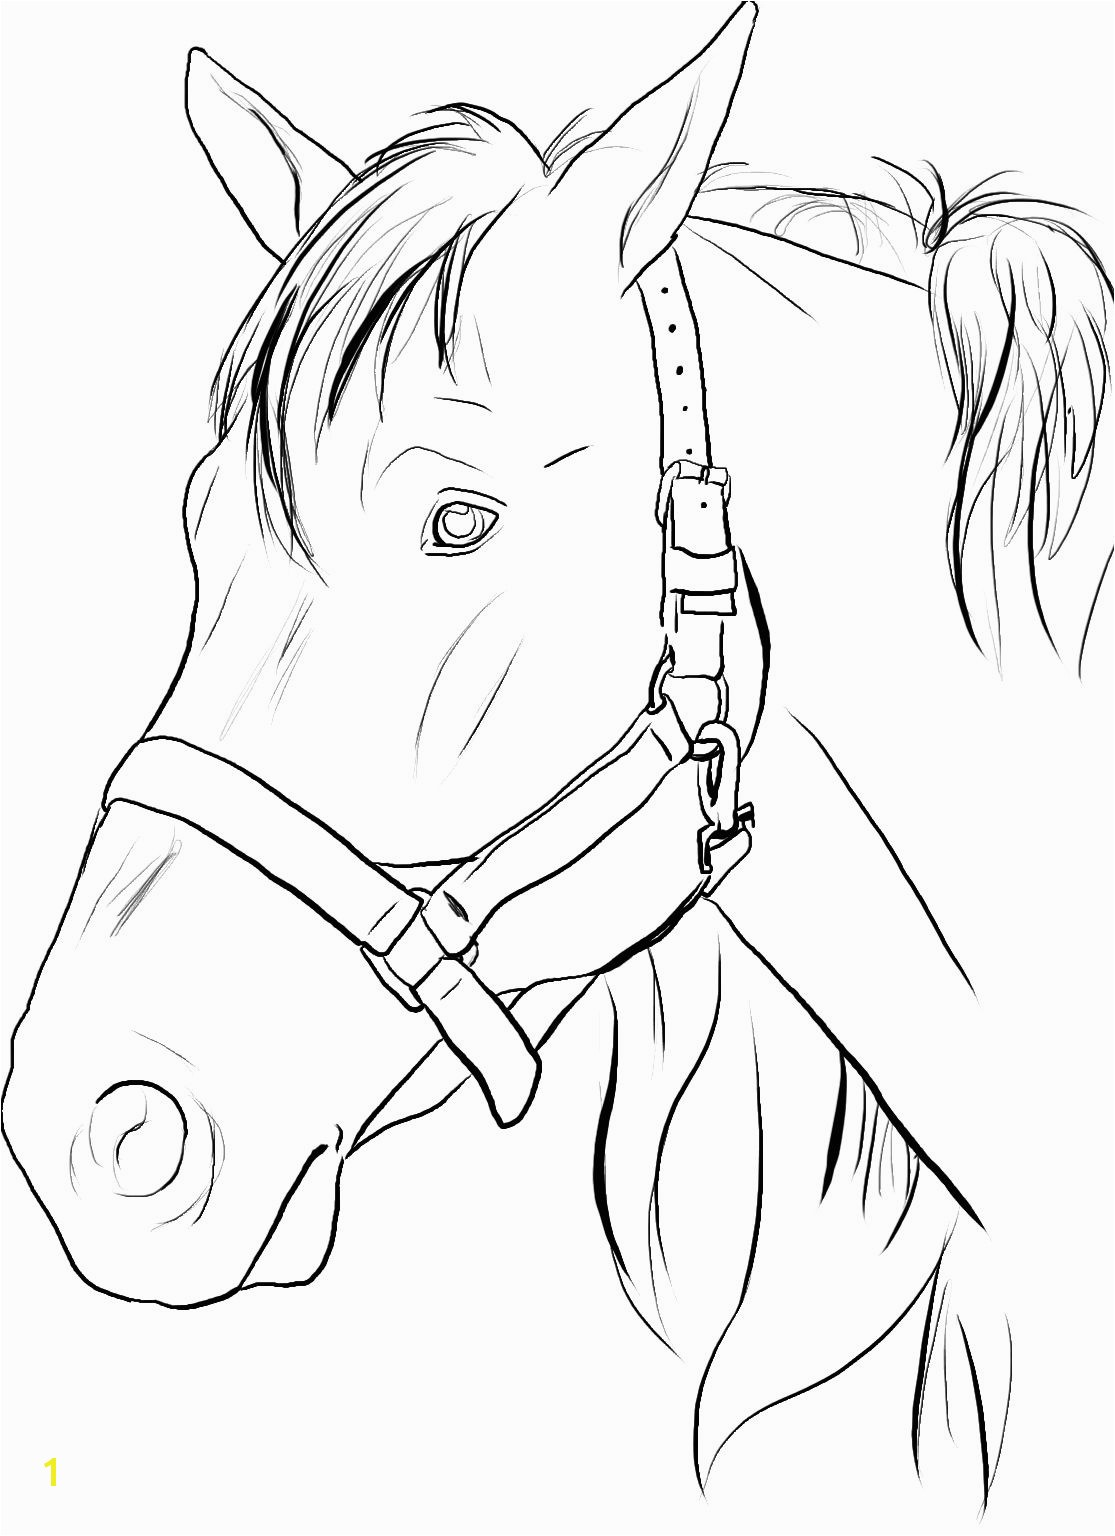 Horse Head Coloring Pages/ Printable Horse Head Coloring Pages to Print Google Search